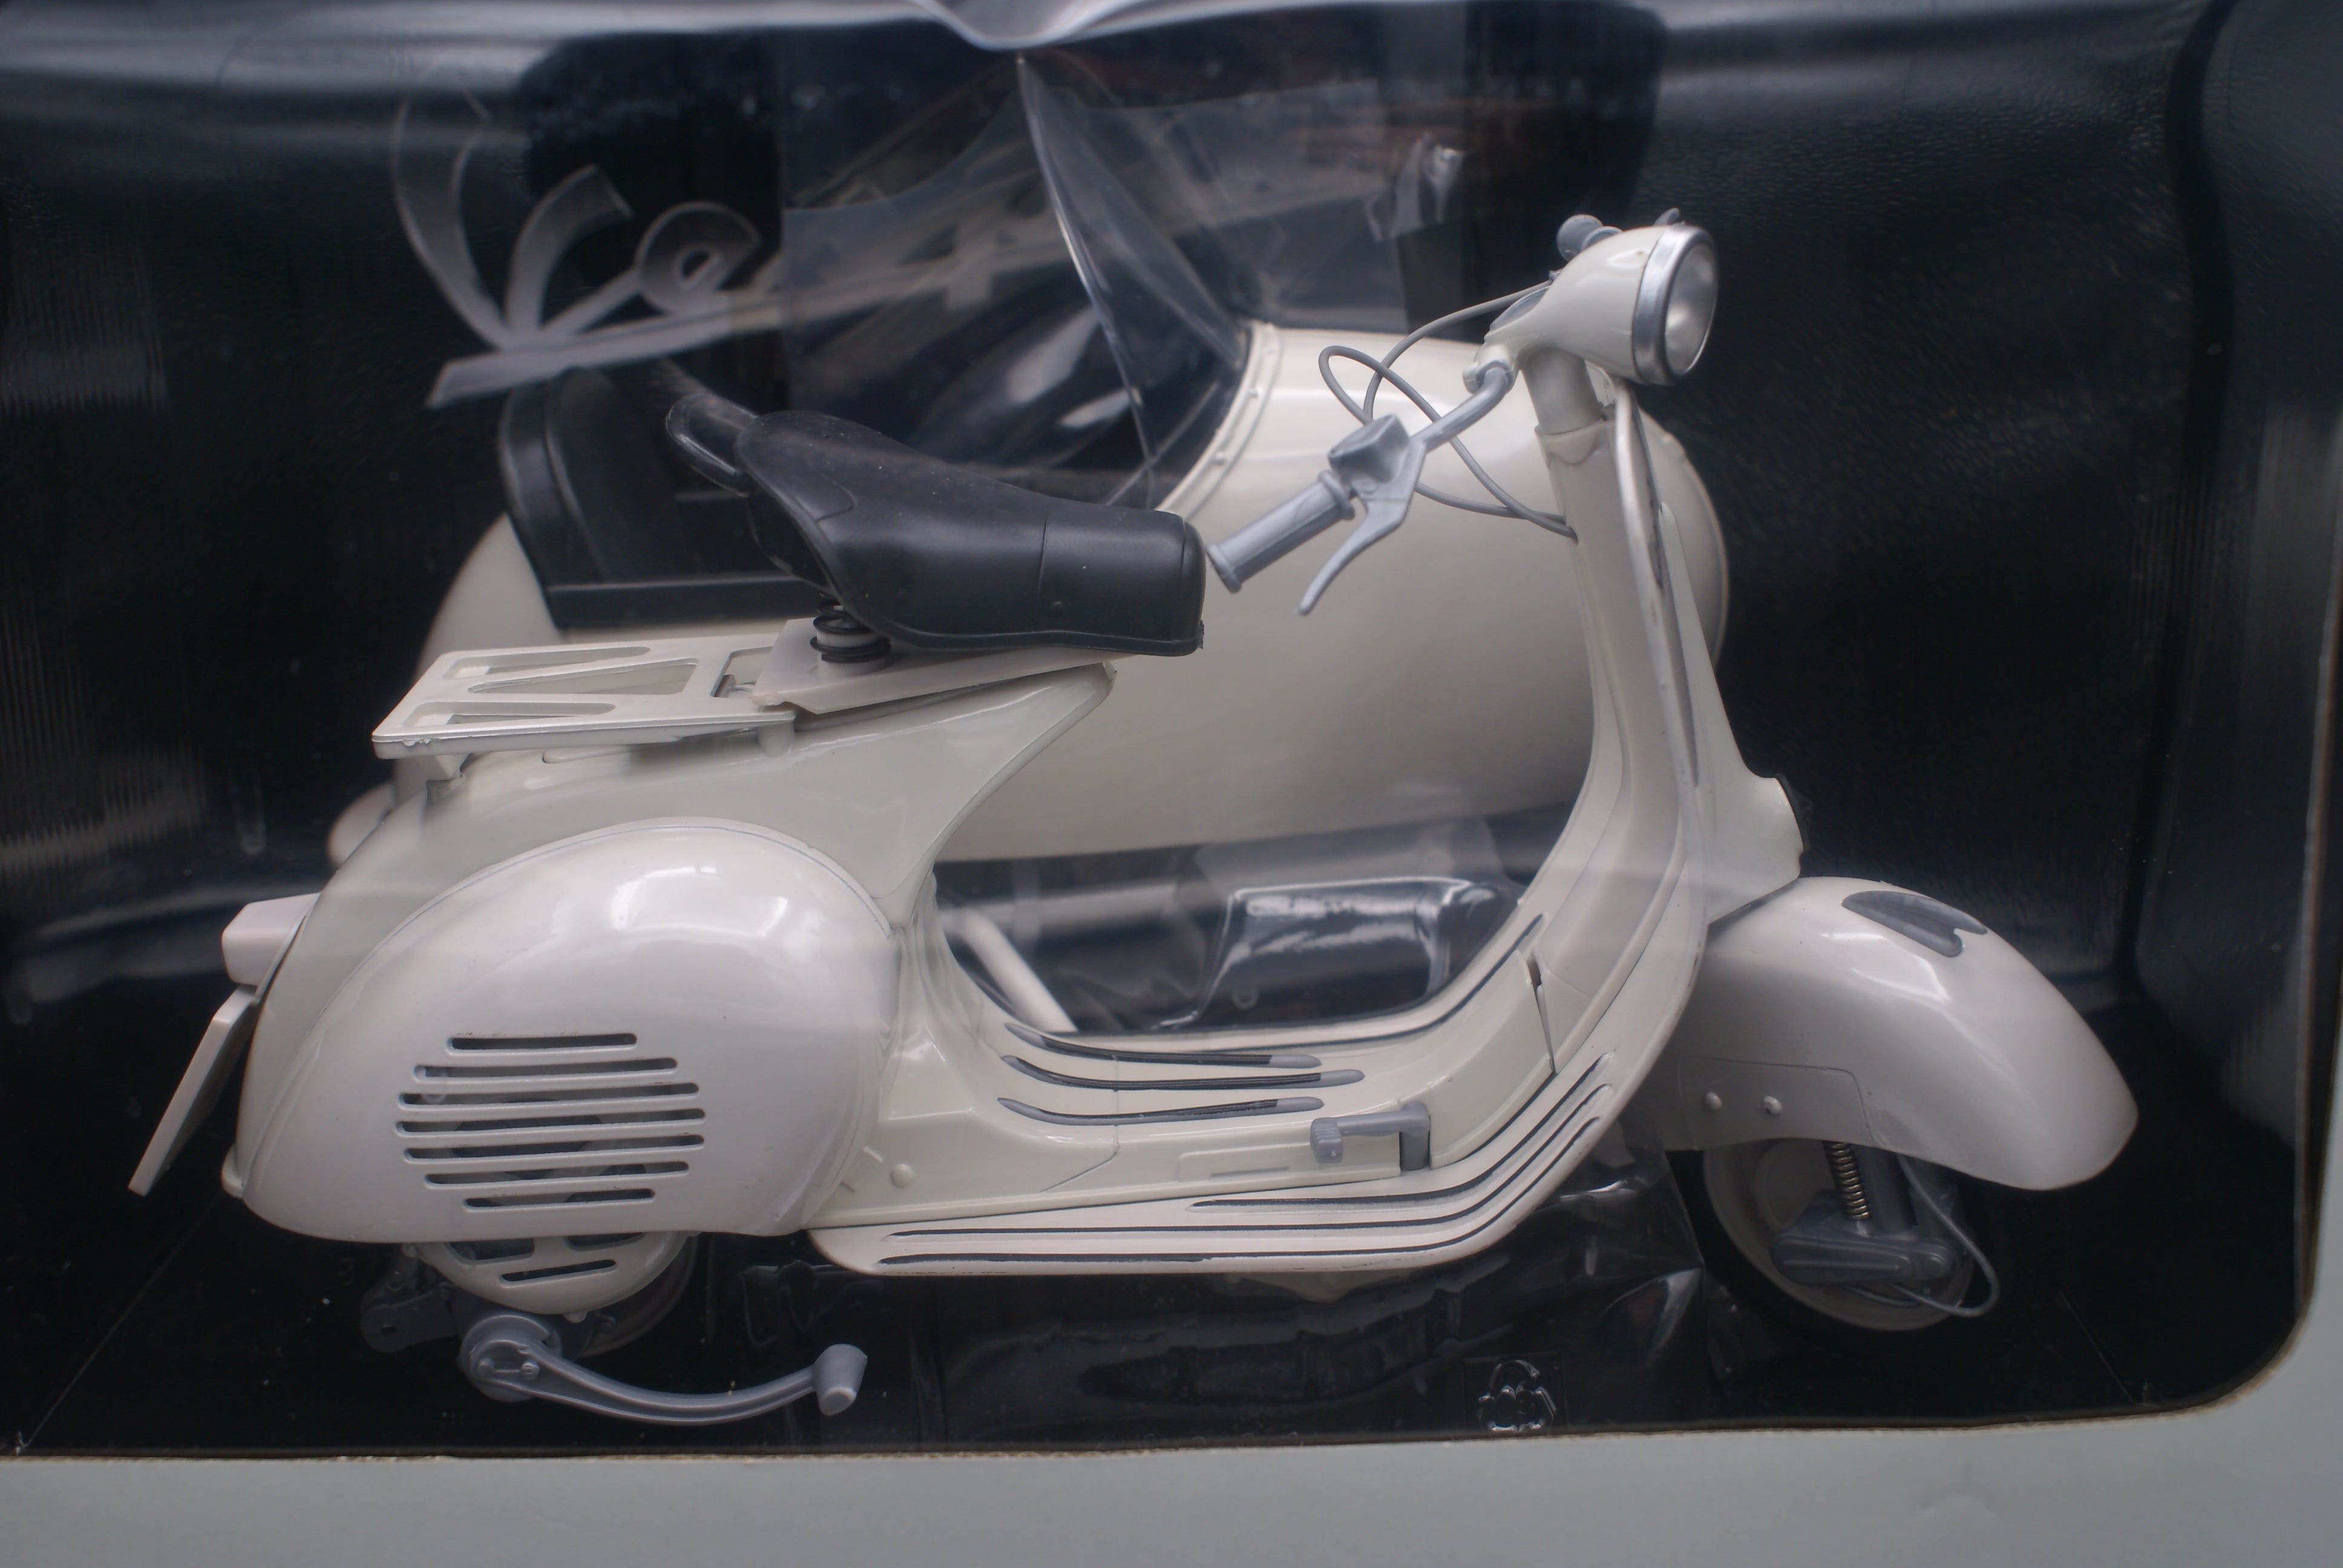 Vespa with sidecar model